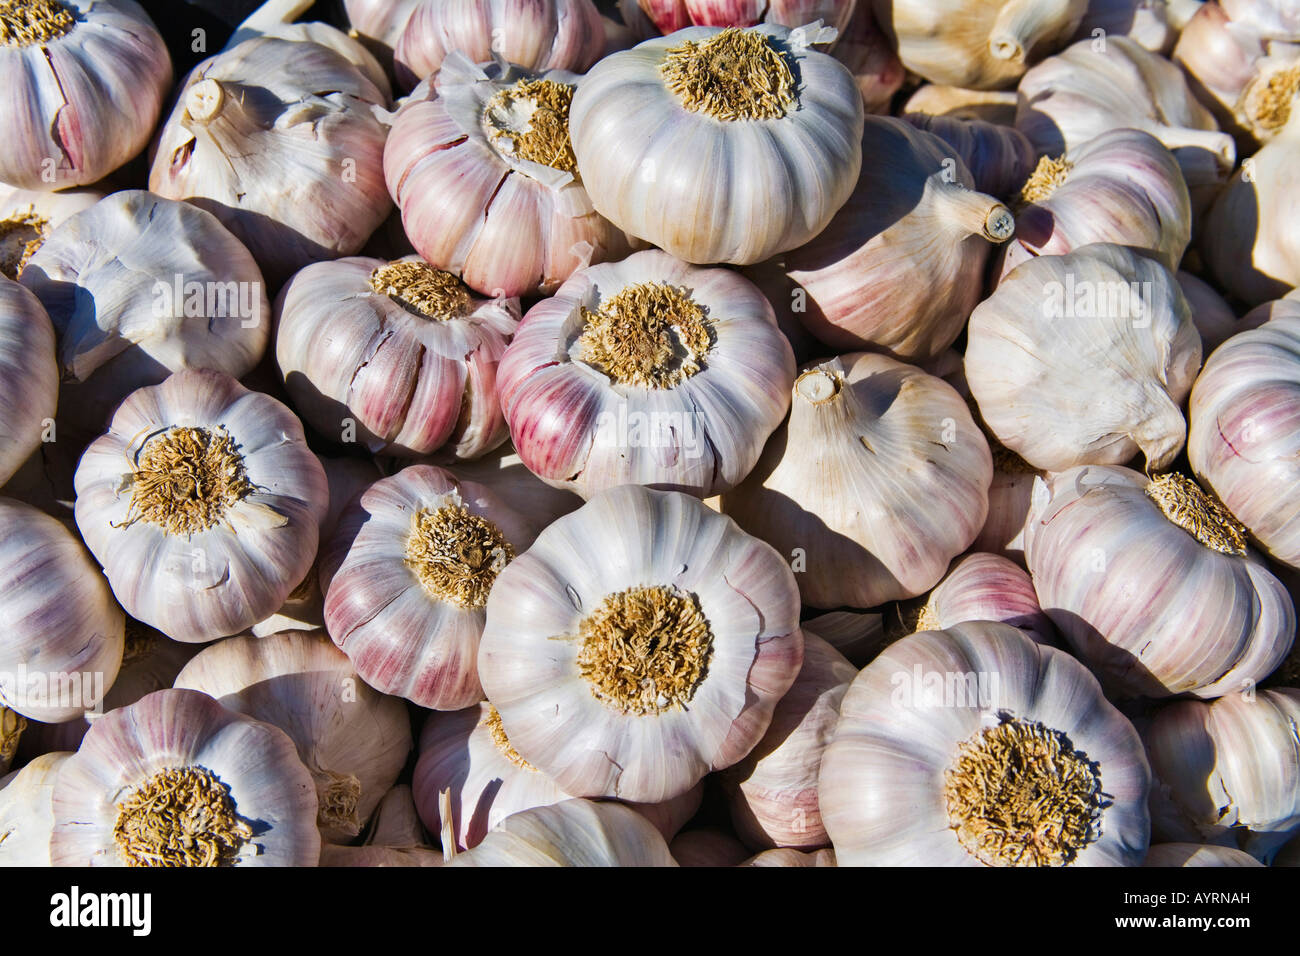 Garlic (Allium sativum) Stock Photo